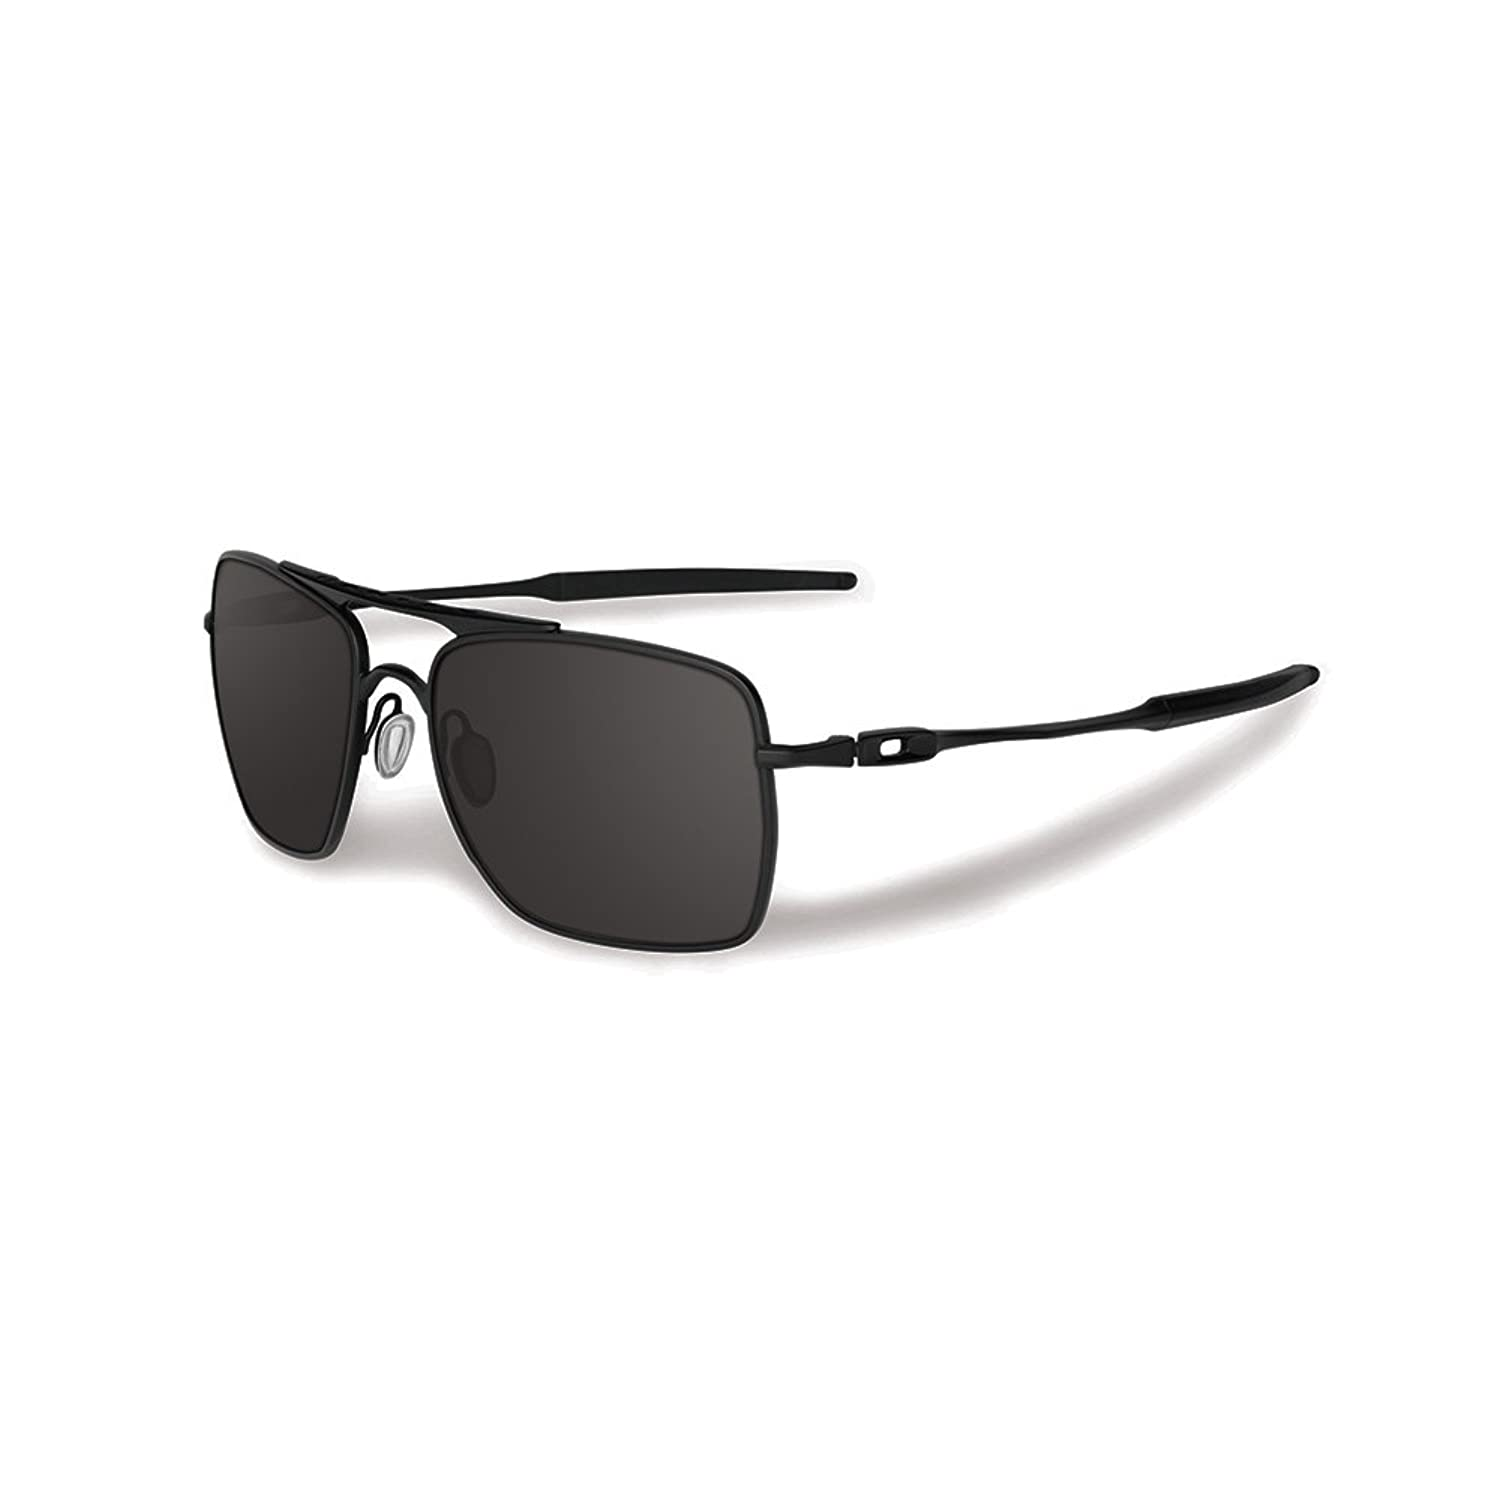 oakley sunglasses usa  oakley sunglasses usa